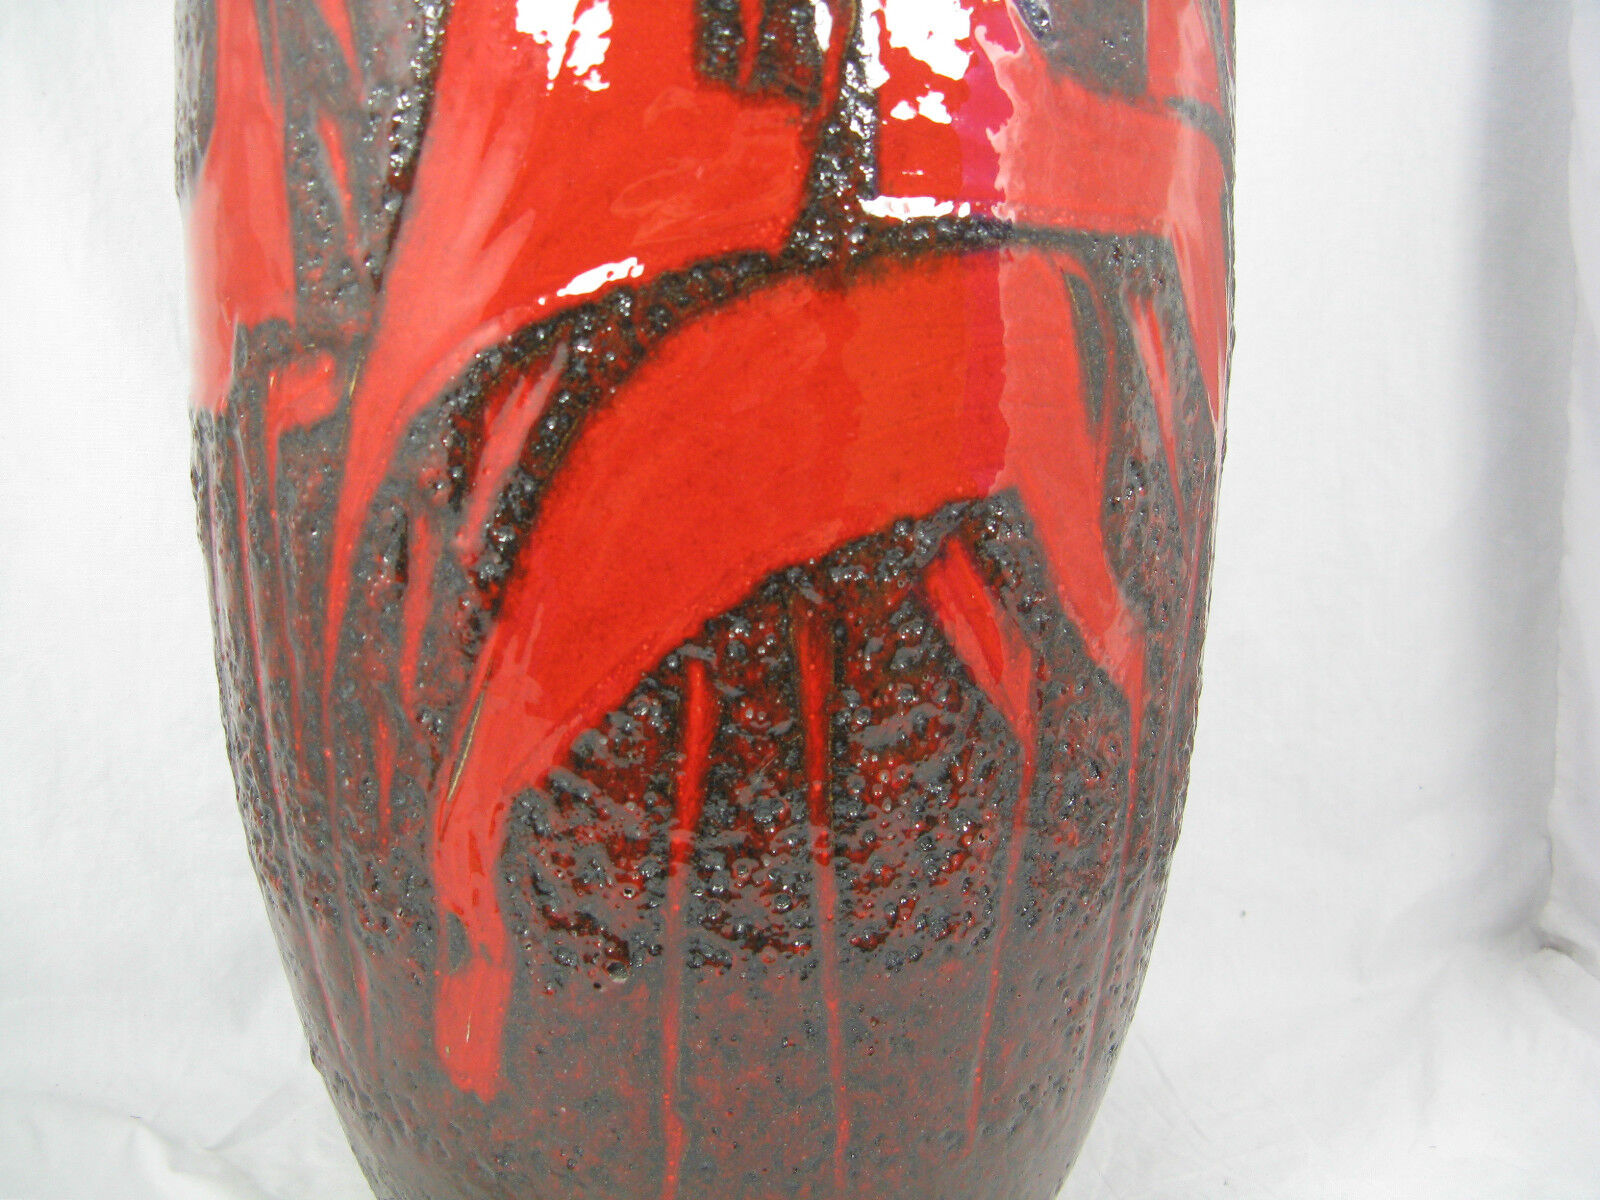 floor vase ebay canada with Cool 70 C2 B4s Design Scheurich Fat Lava Keramik Pottery 362223391033 on Fake Flowers In Vase Silk Flowers In Vase Stock Photo Plastic Flower Vases Walmart furthermore VINTAGE 165 BLENKO 5519 L SEA GREEN ART 131786654387 together with Bn 81051492 likewise Tall White Vase Cool Tall White Vases Tall White Vases Wholesale Remodel Ideas Tall Vase Bell Reversible Vase Beautiful Tall White Vase Canada together with Antique Vase Tokoname 5 Handles Terra Cotta 1850 1899 Japan 112247373242.